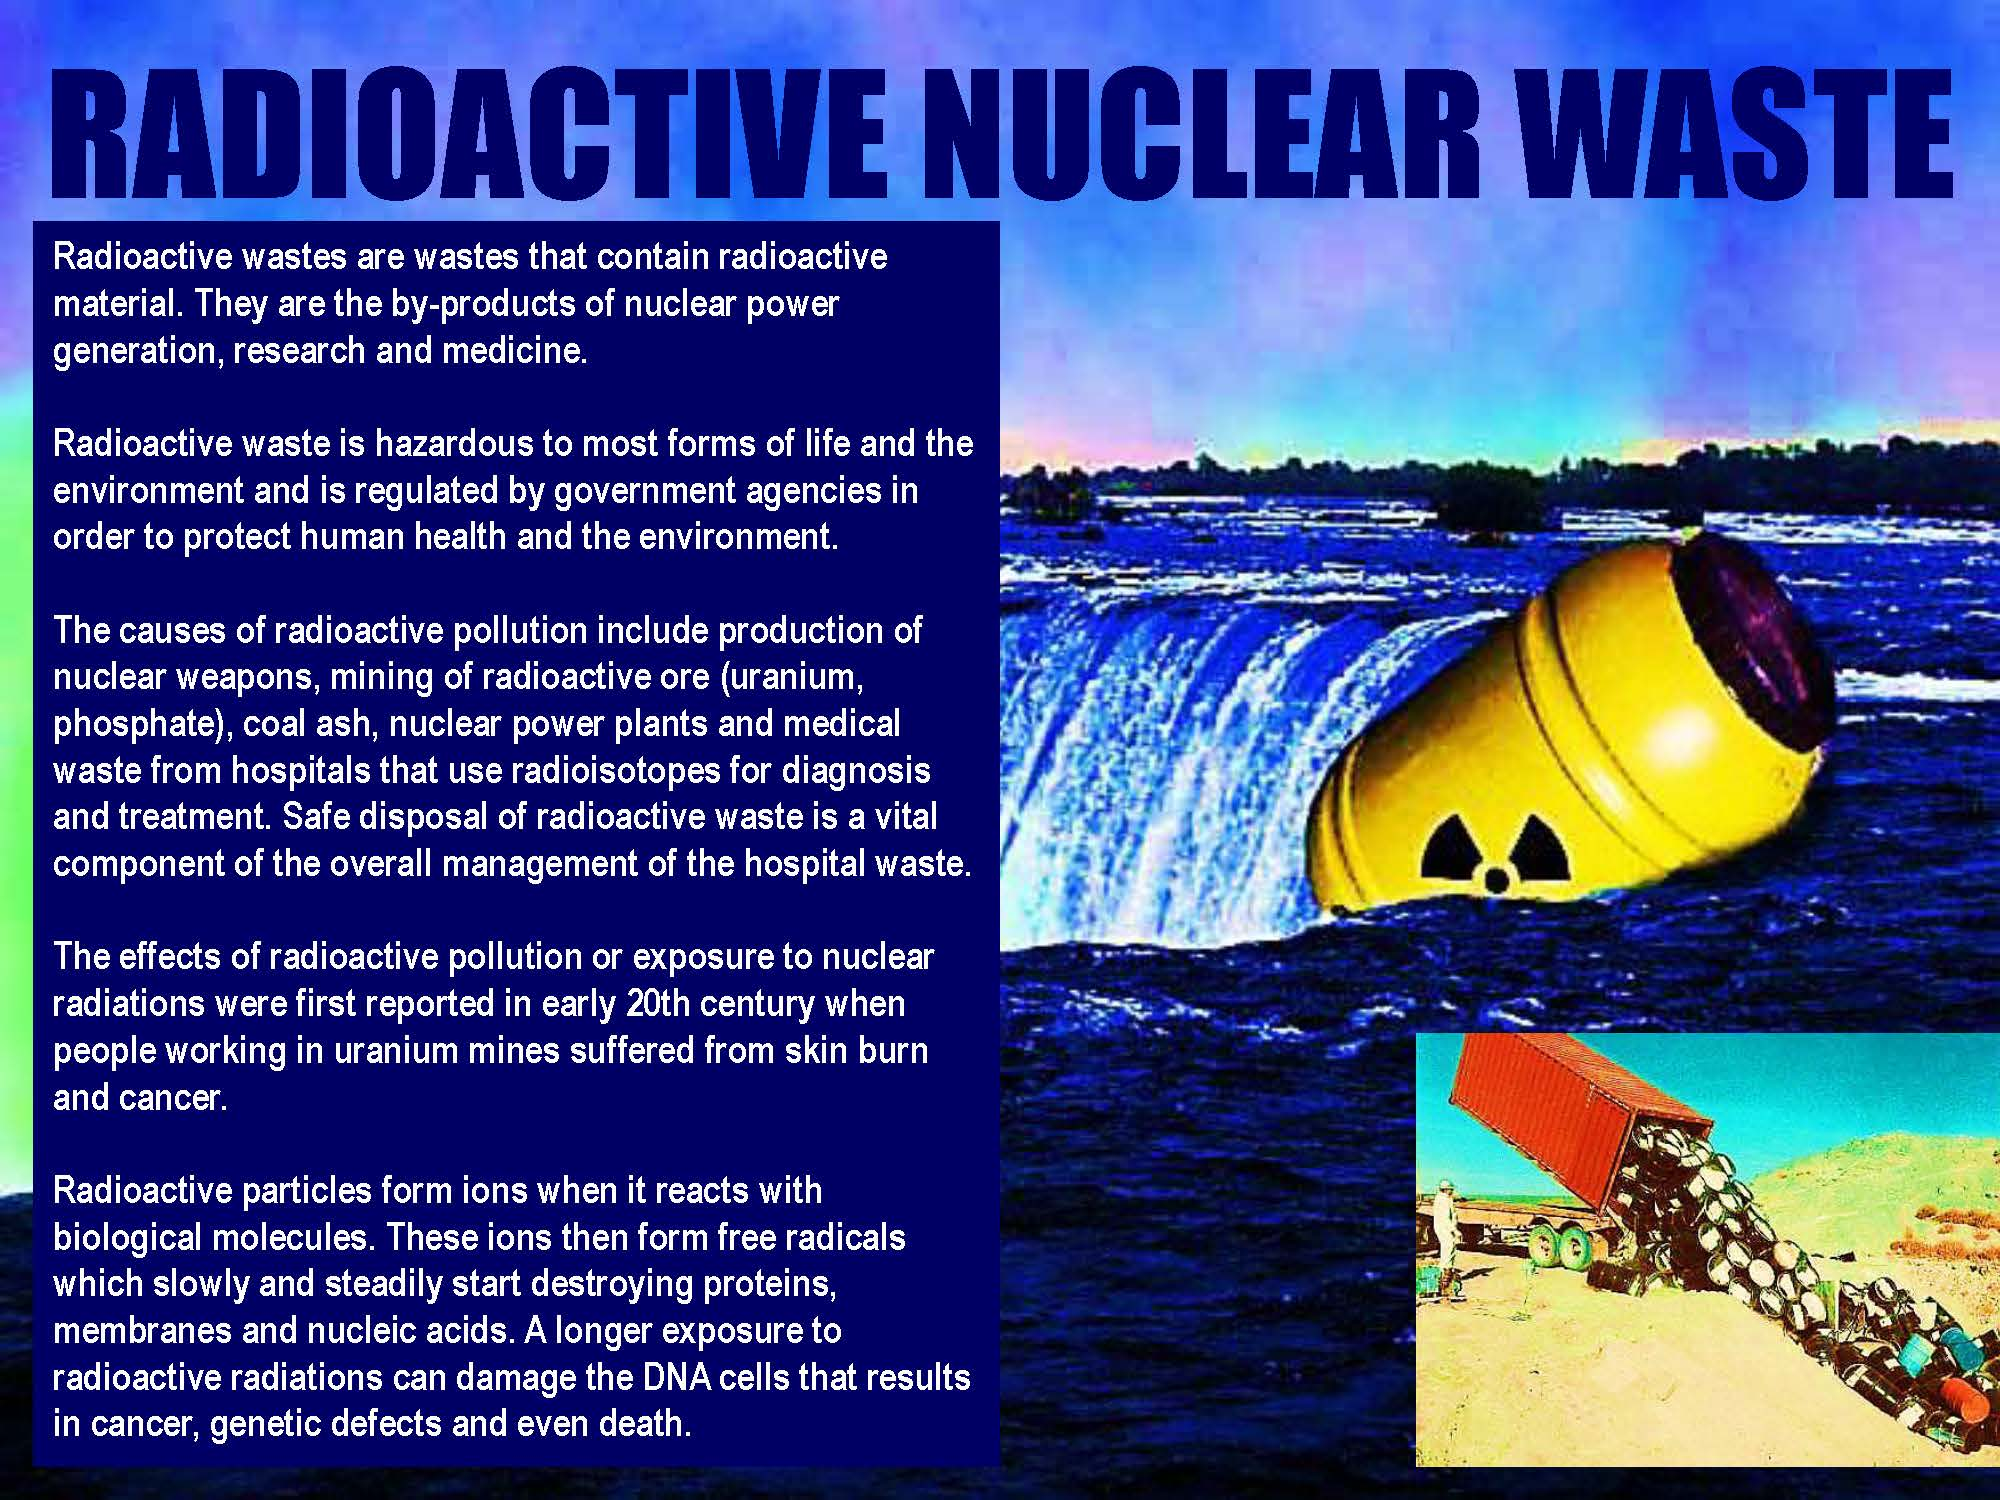 an overview of the radioactive wastes and the issues of the radiation It is a natural consequence of using radioactive materials that radioactive waste is generated these wastes must be managed safely and appropriately related pages amounts of radioactive waste in australia most of australia's radioactive waste consists of low level and short-lived intermediate level waste.